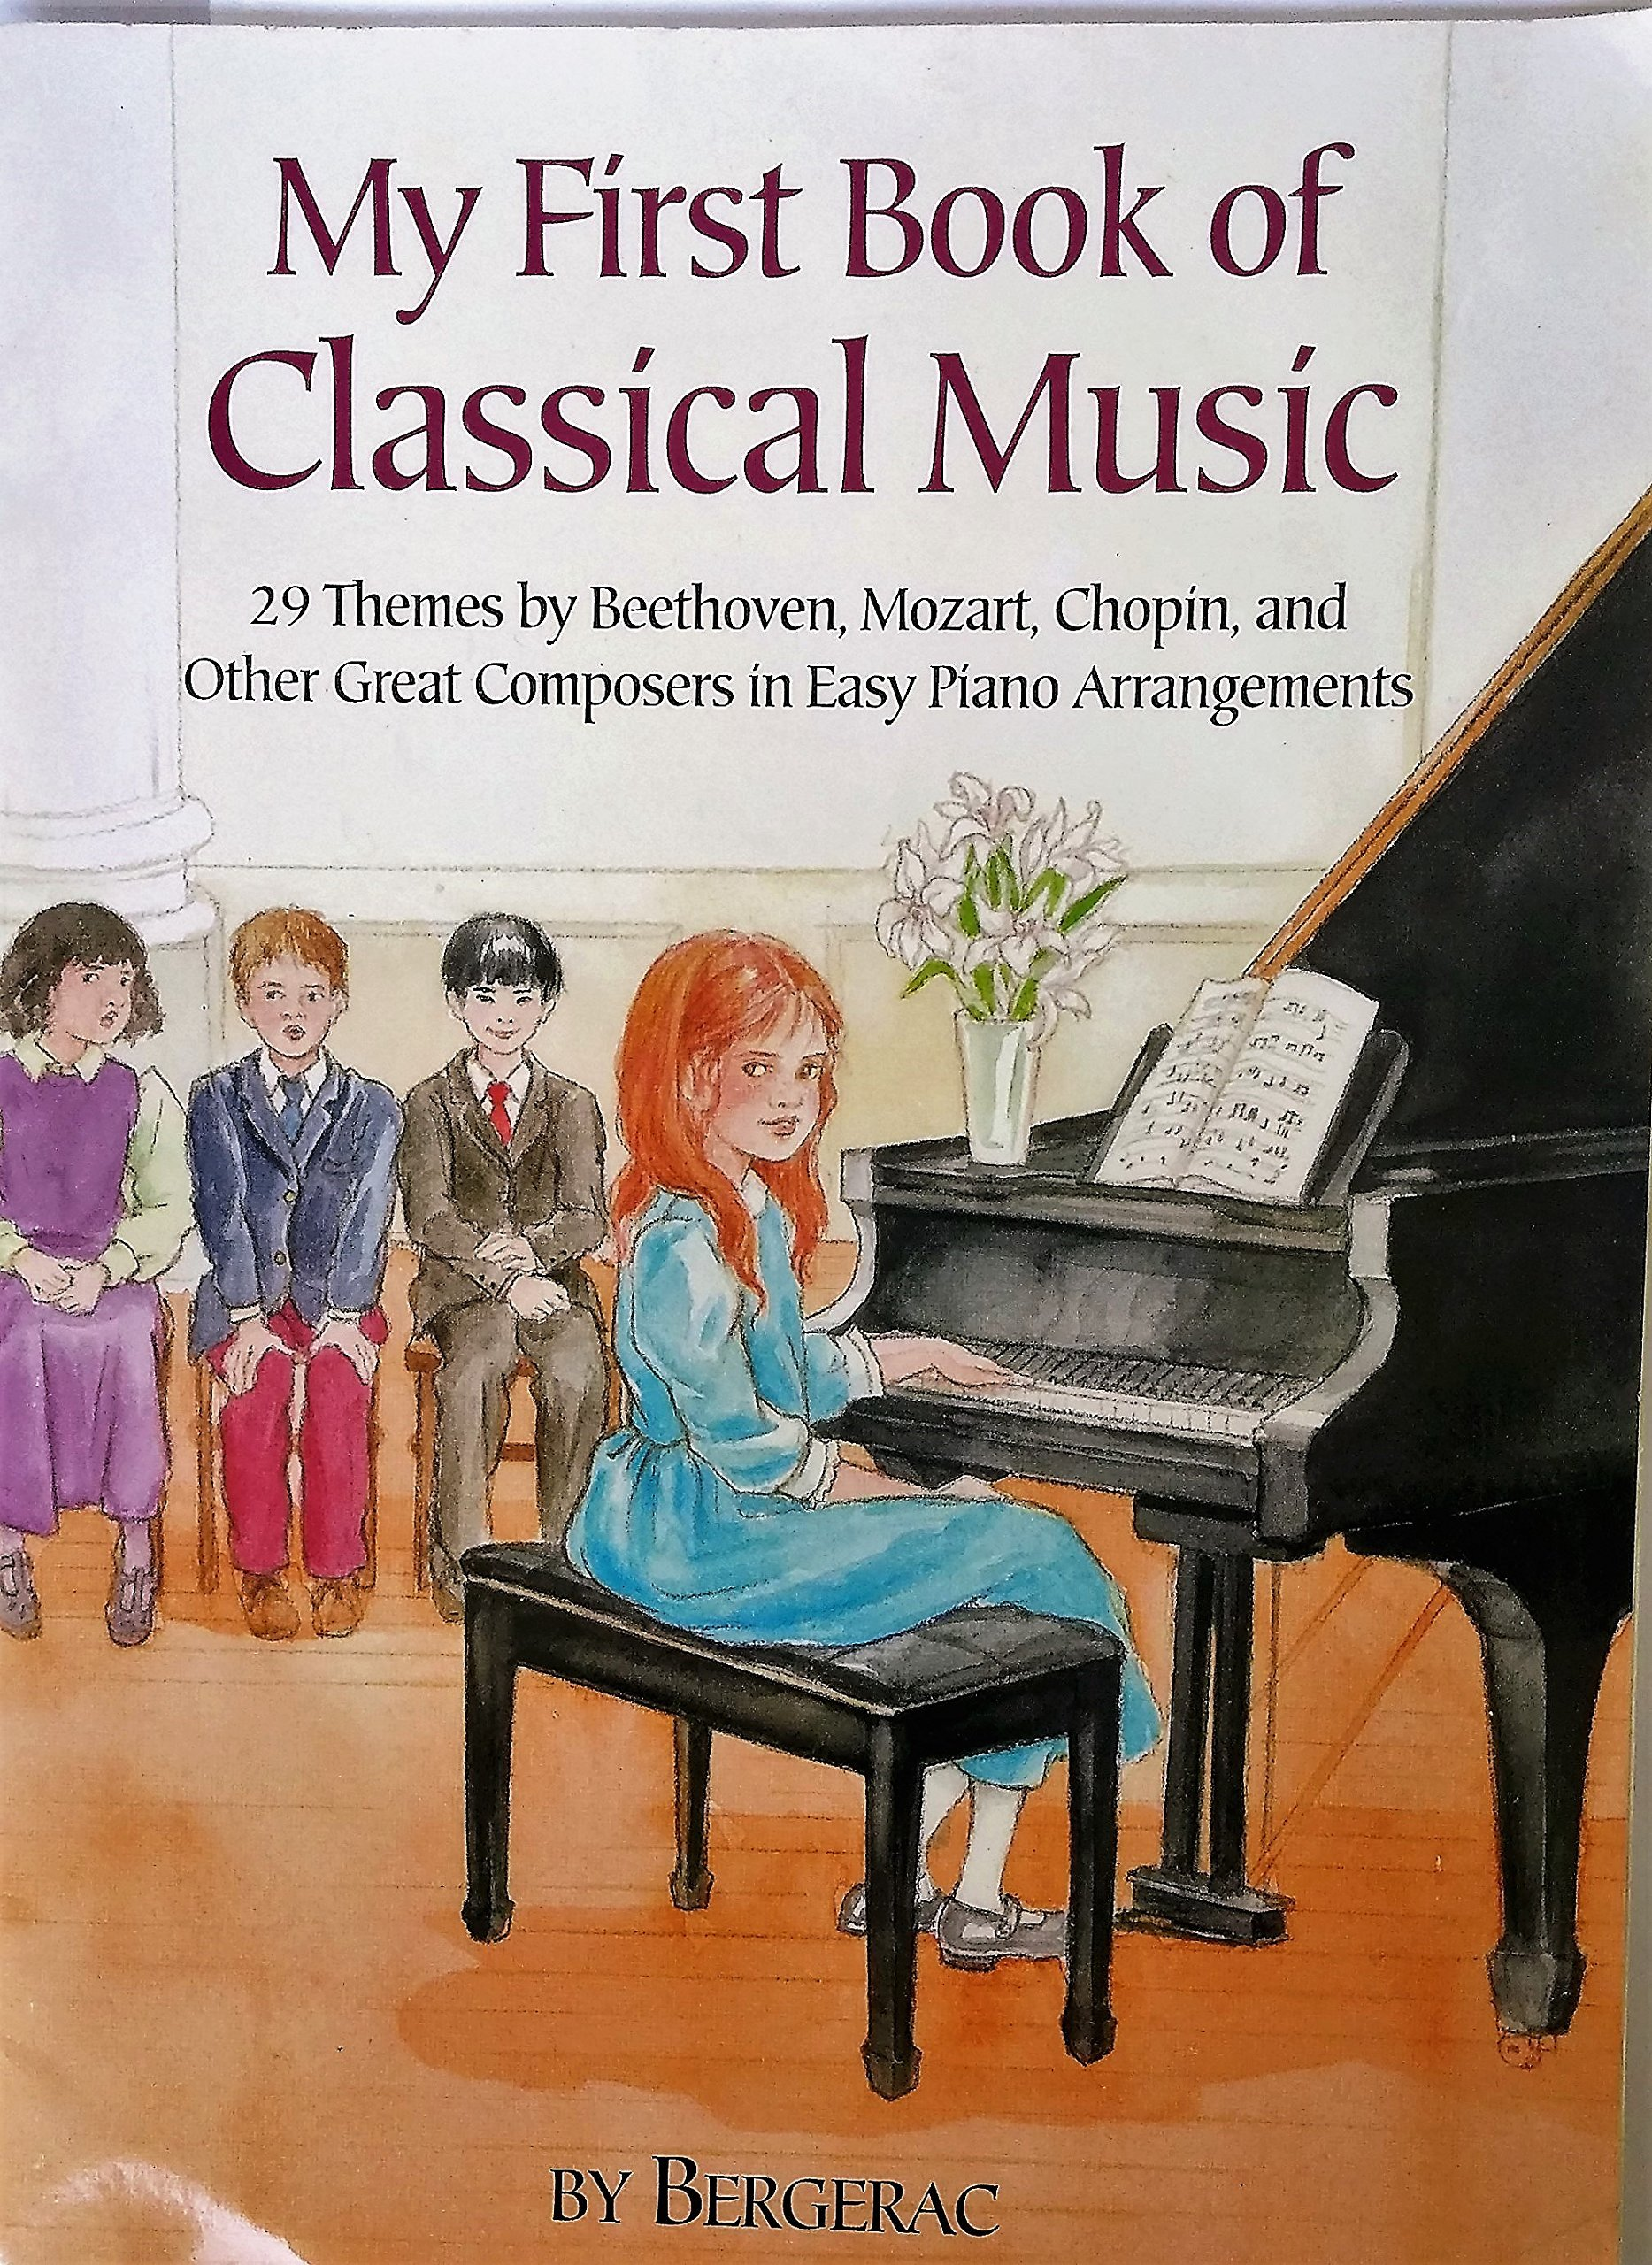 A First Book of Classical Music: 29 Themes by Beethoven, Mozart, Chopin and Other Great Composers in Easy Piano Arrangements pdf